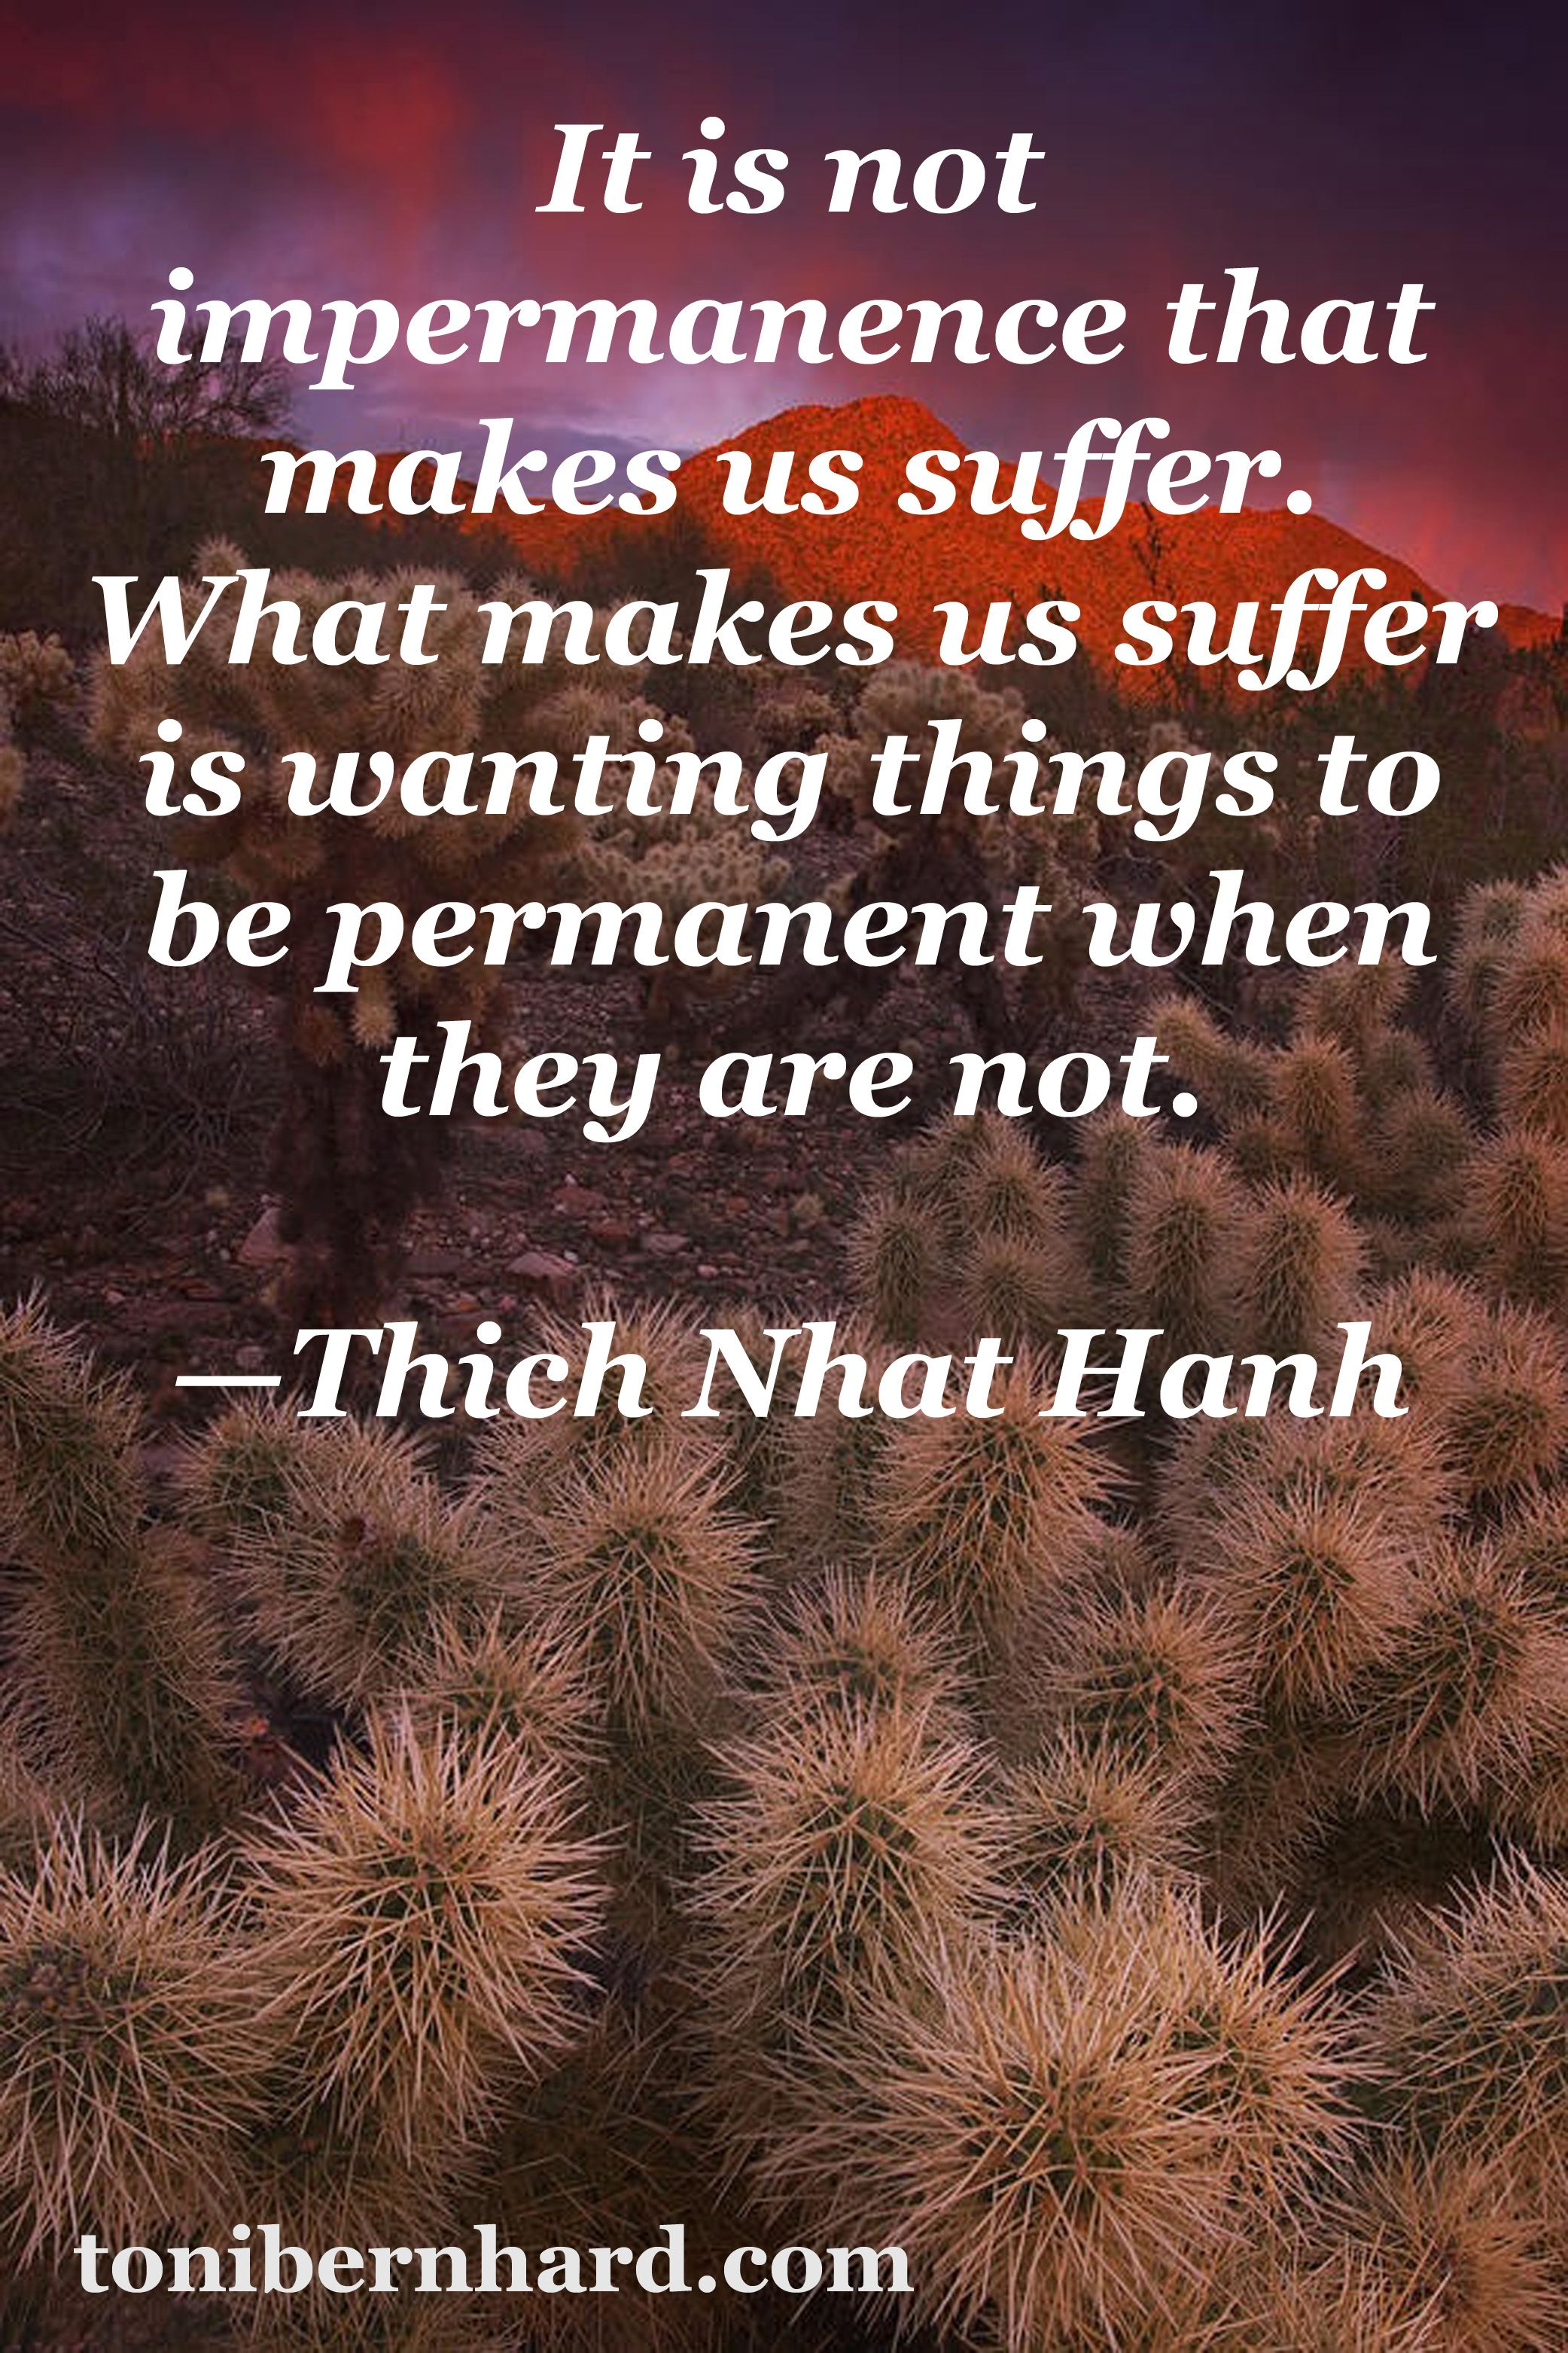 Pin By Rayelene Mcmaster On Buddhist Inspired Life Buddhist Quotes Thich Nhat Hanh Thich Nhat Hanh Quotes